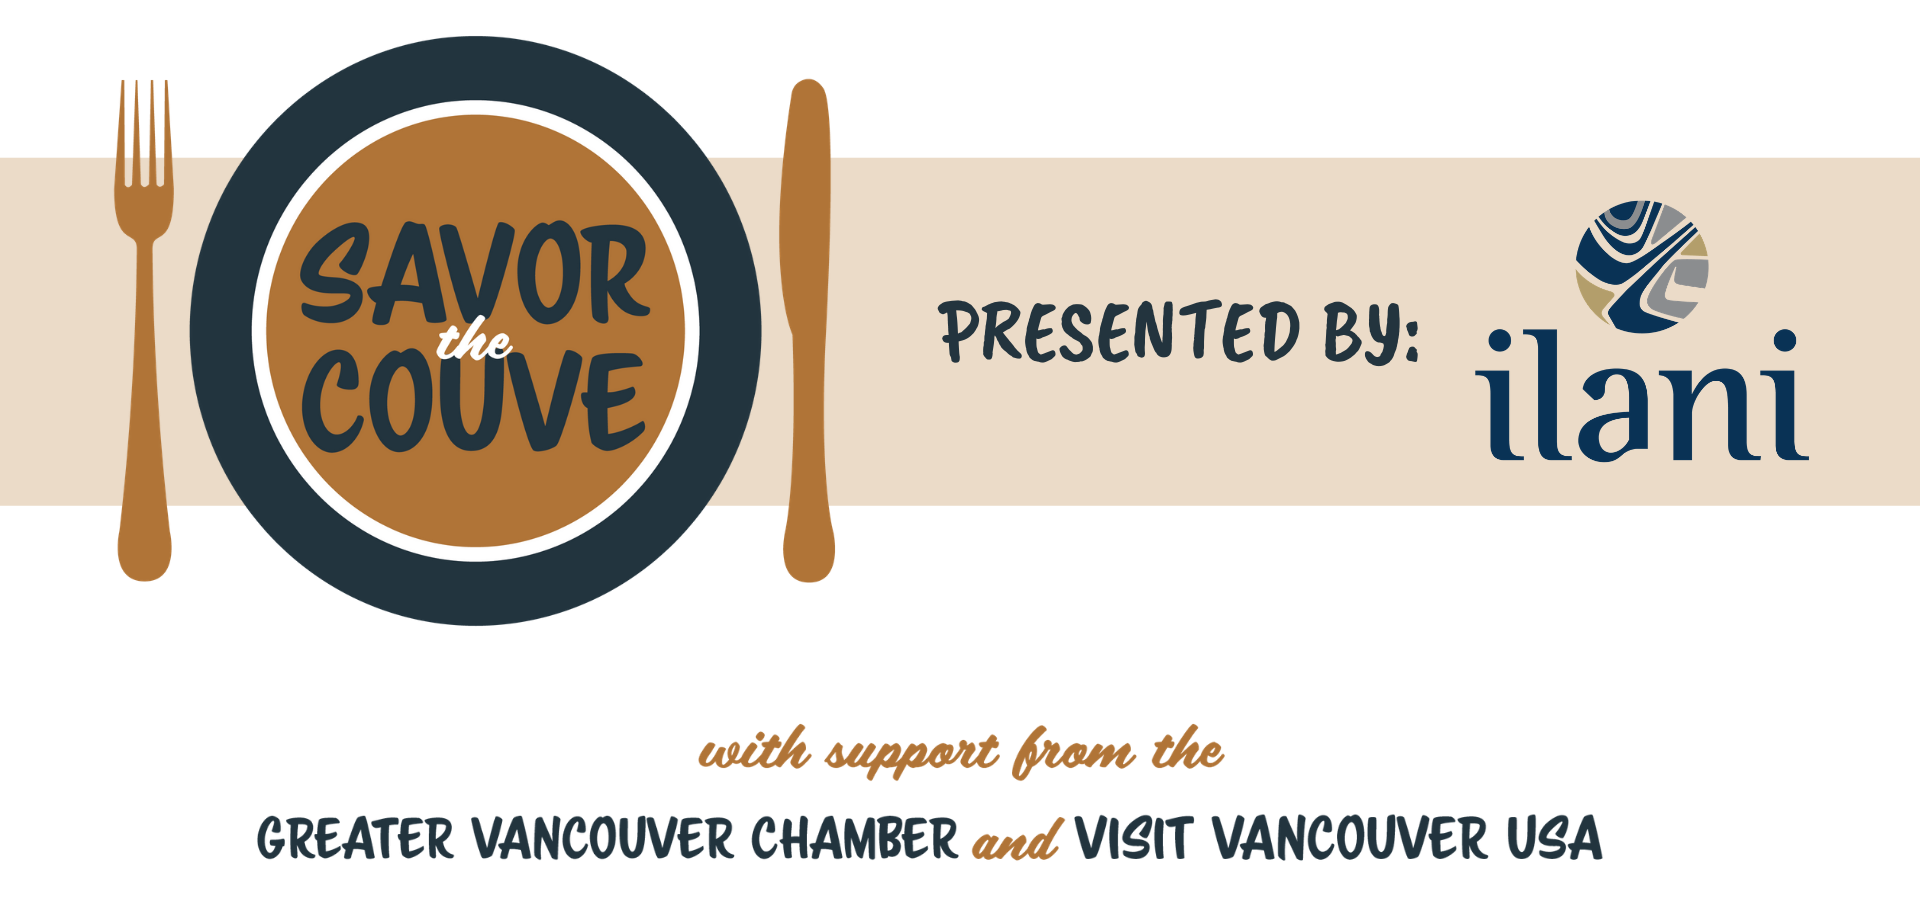 with support from the greater vancouver chamber and visit vancouver usa savor the couve PRESENTED BY ILANI